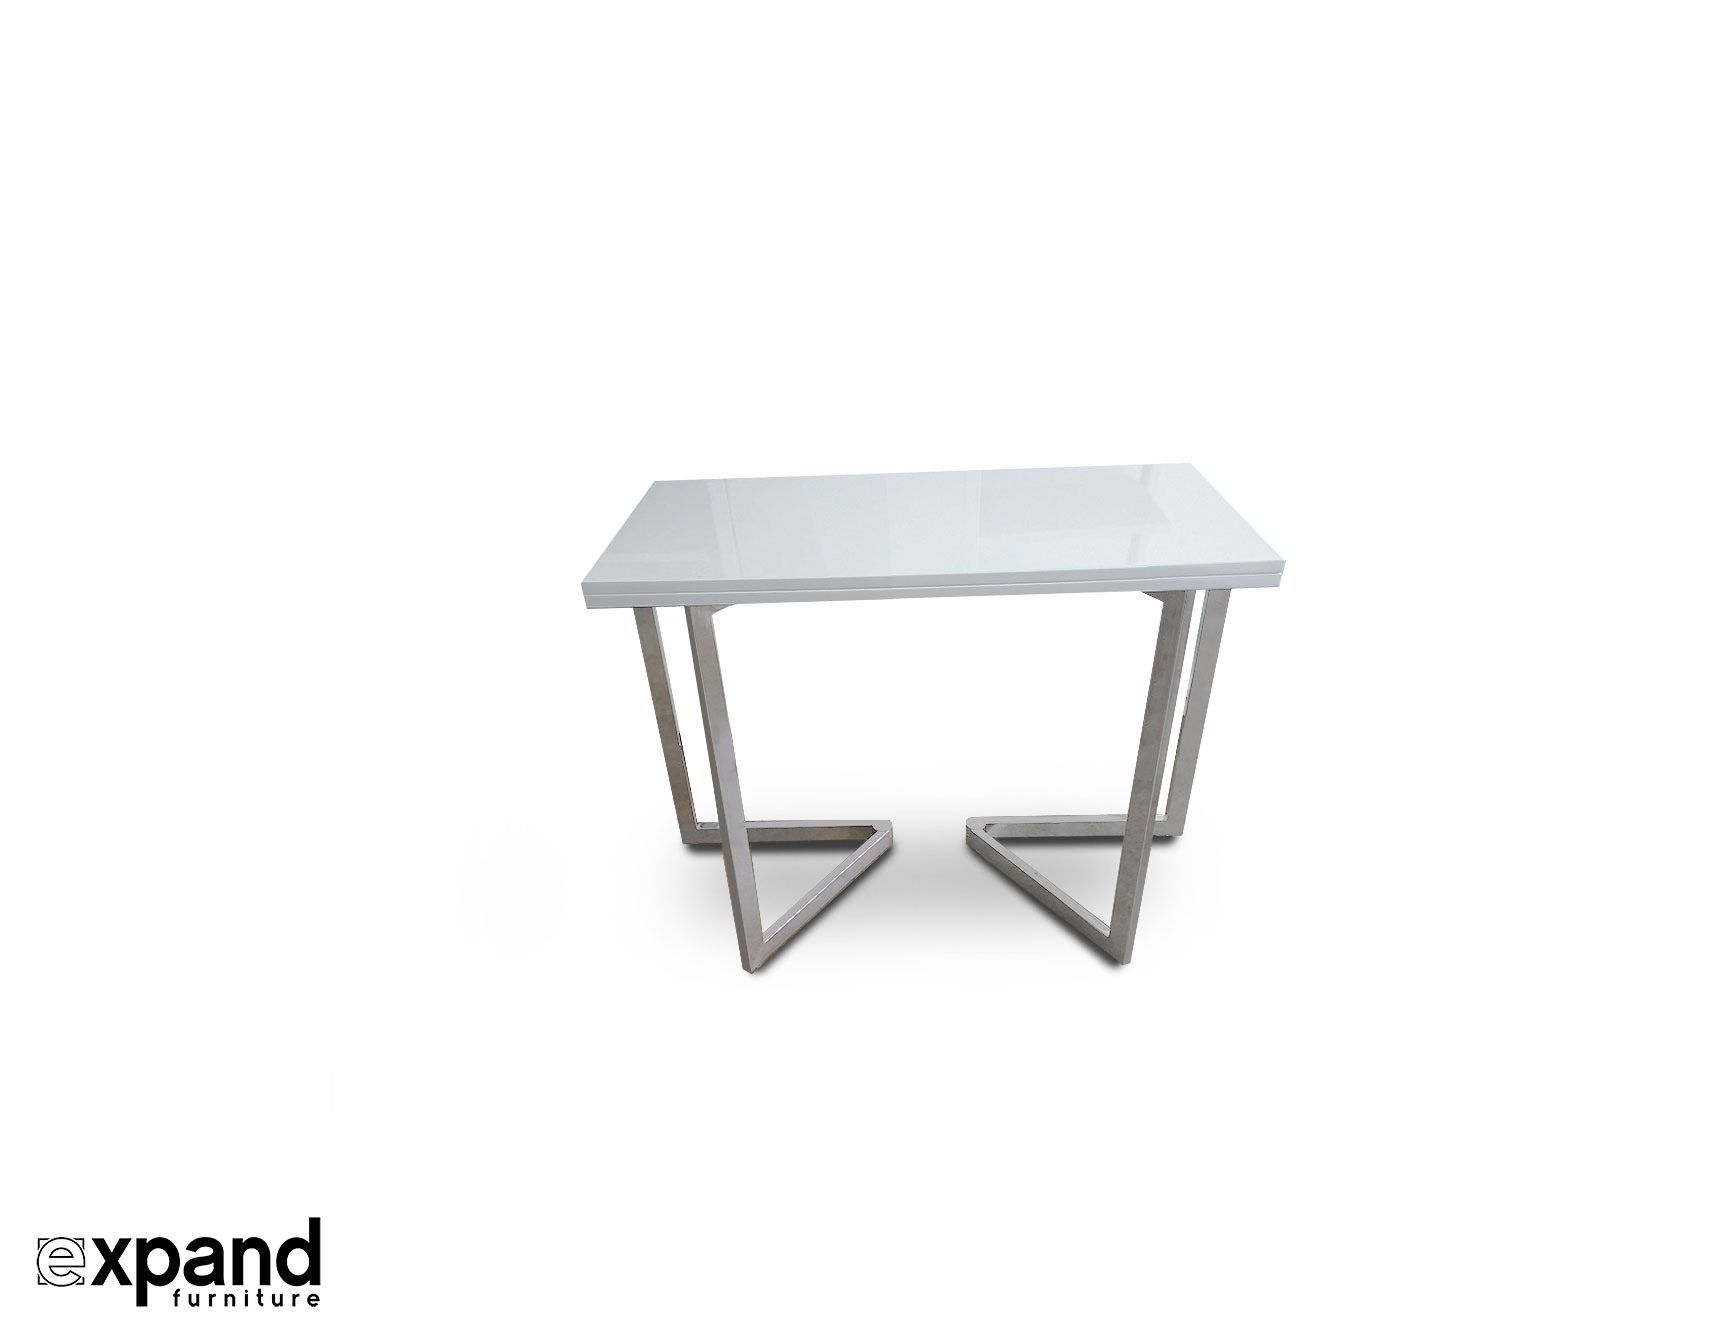 Mini Flip Compact Desk To Table Expand Furniture